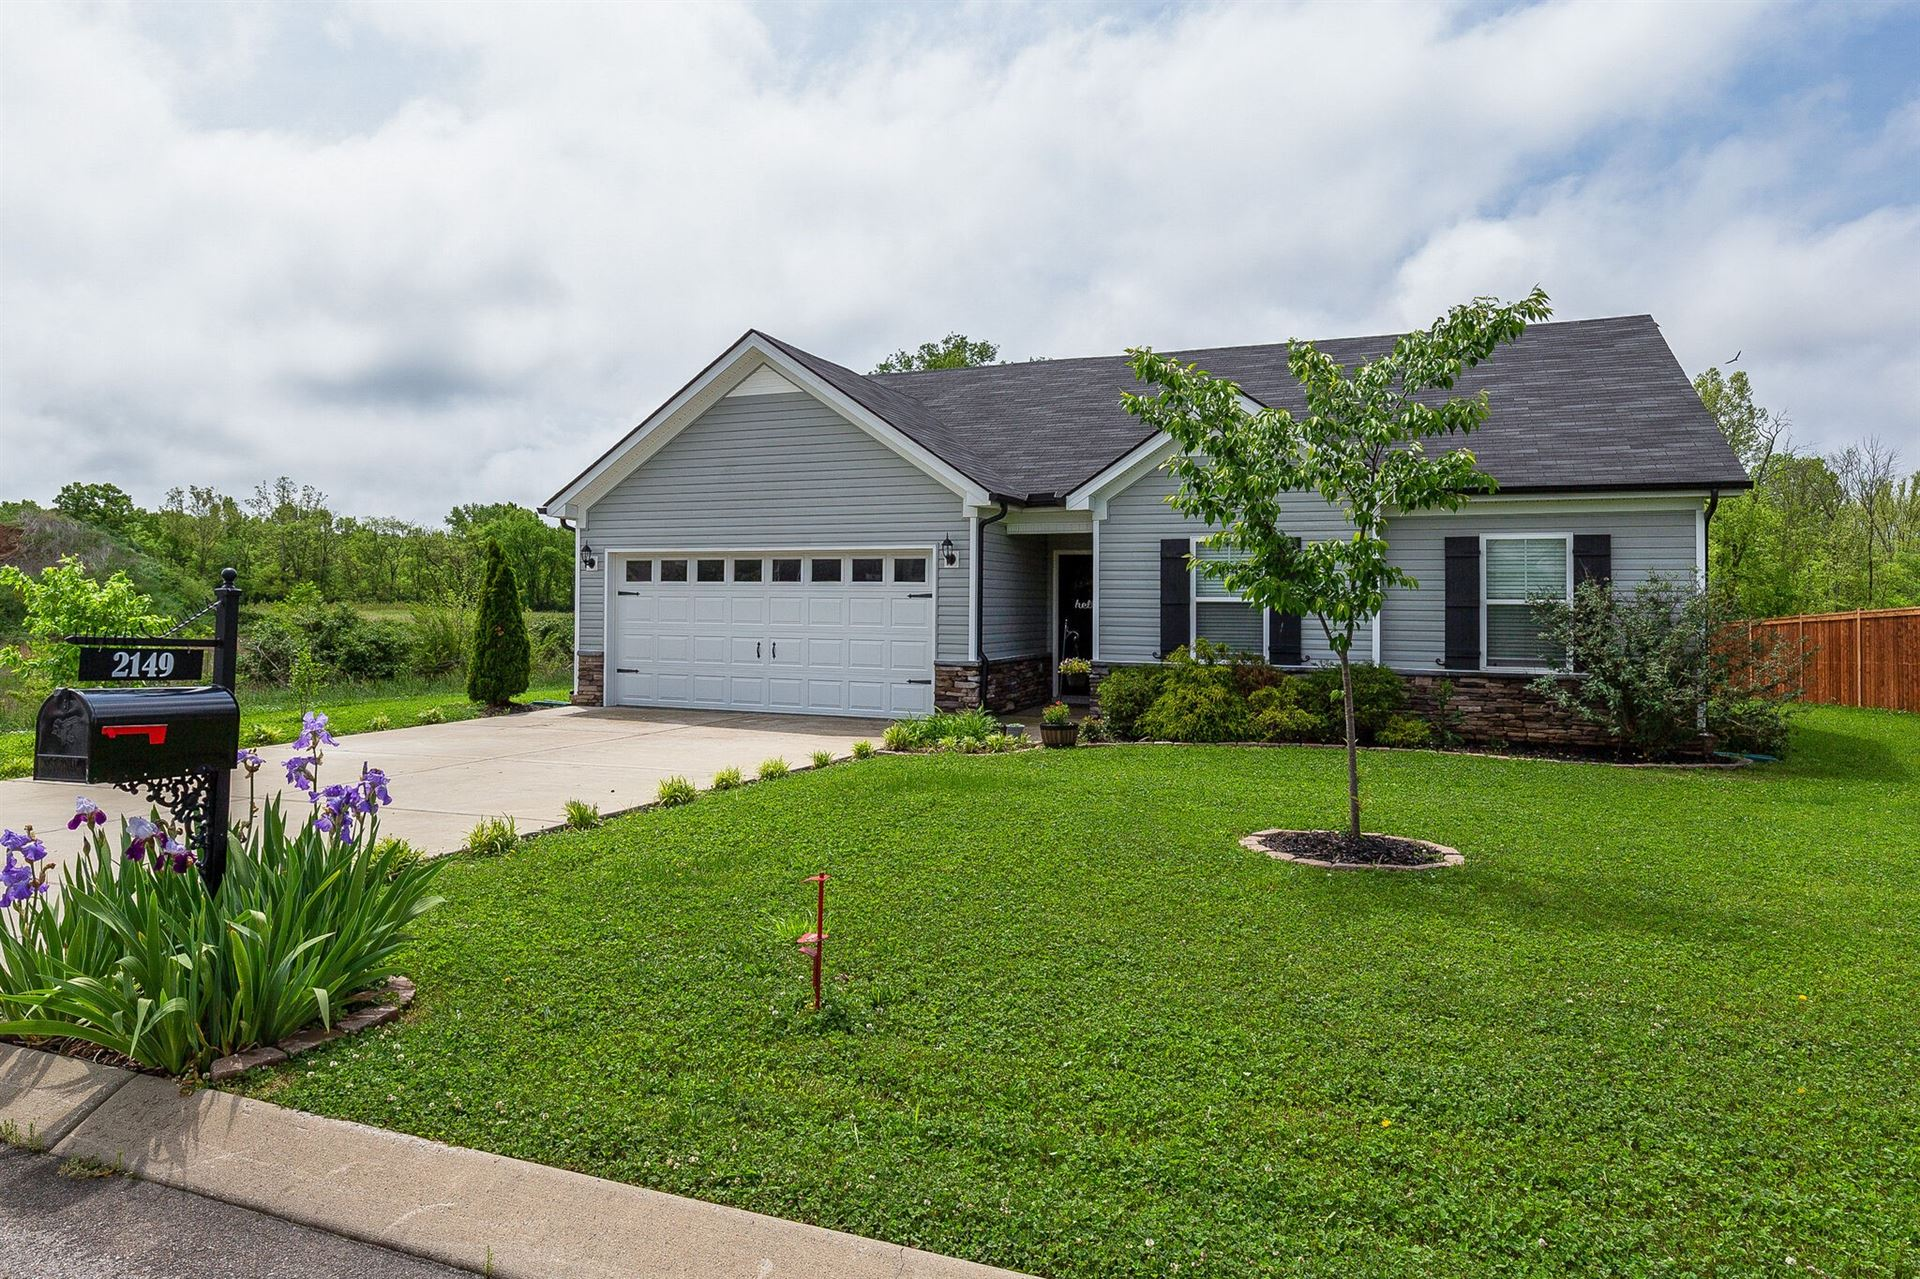 Photo of 2149 Longhunter Chase Dr, Spring Hill, TN 37174 (MLS # 2249908)